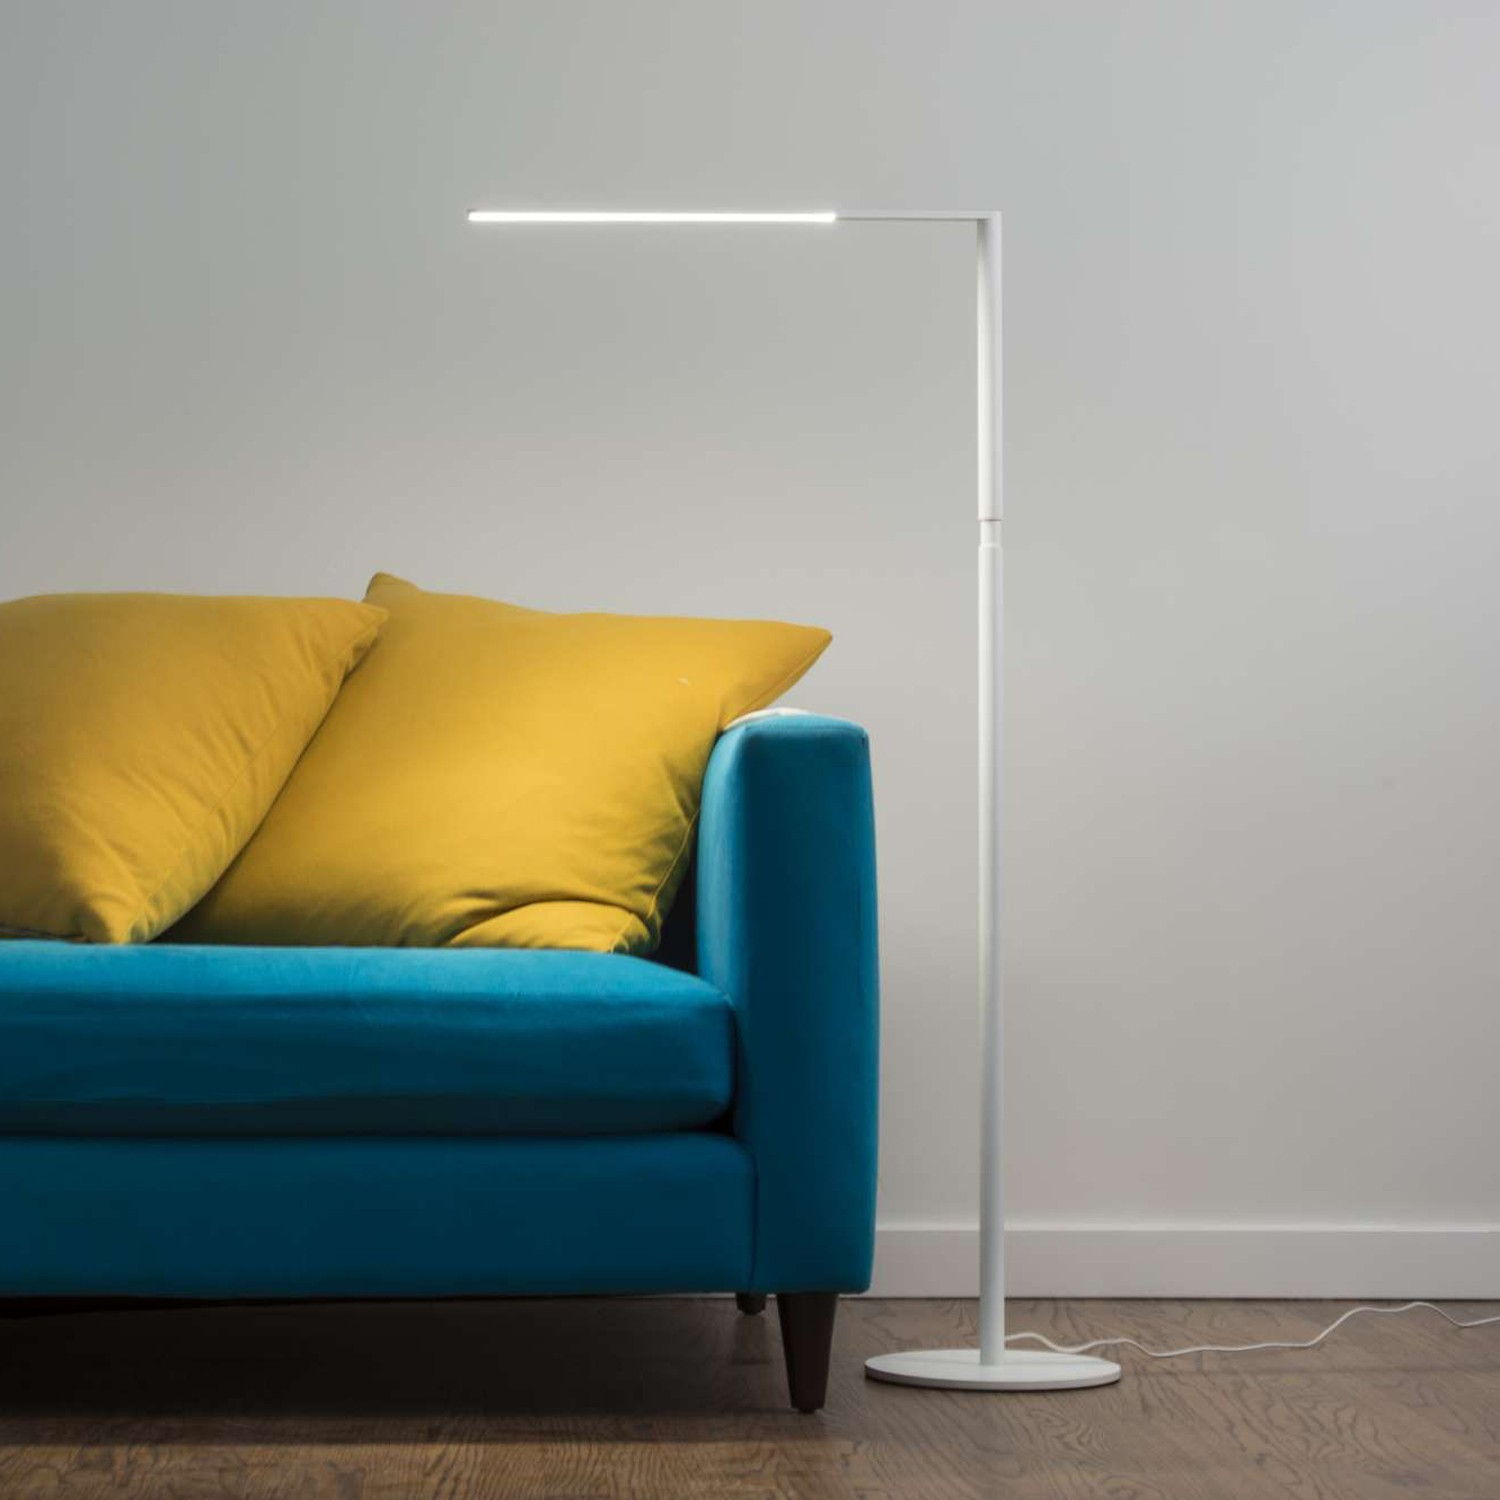 A Floor Lamp or A Torchiere